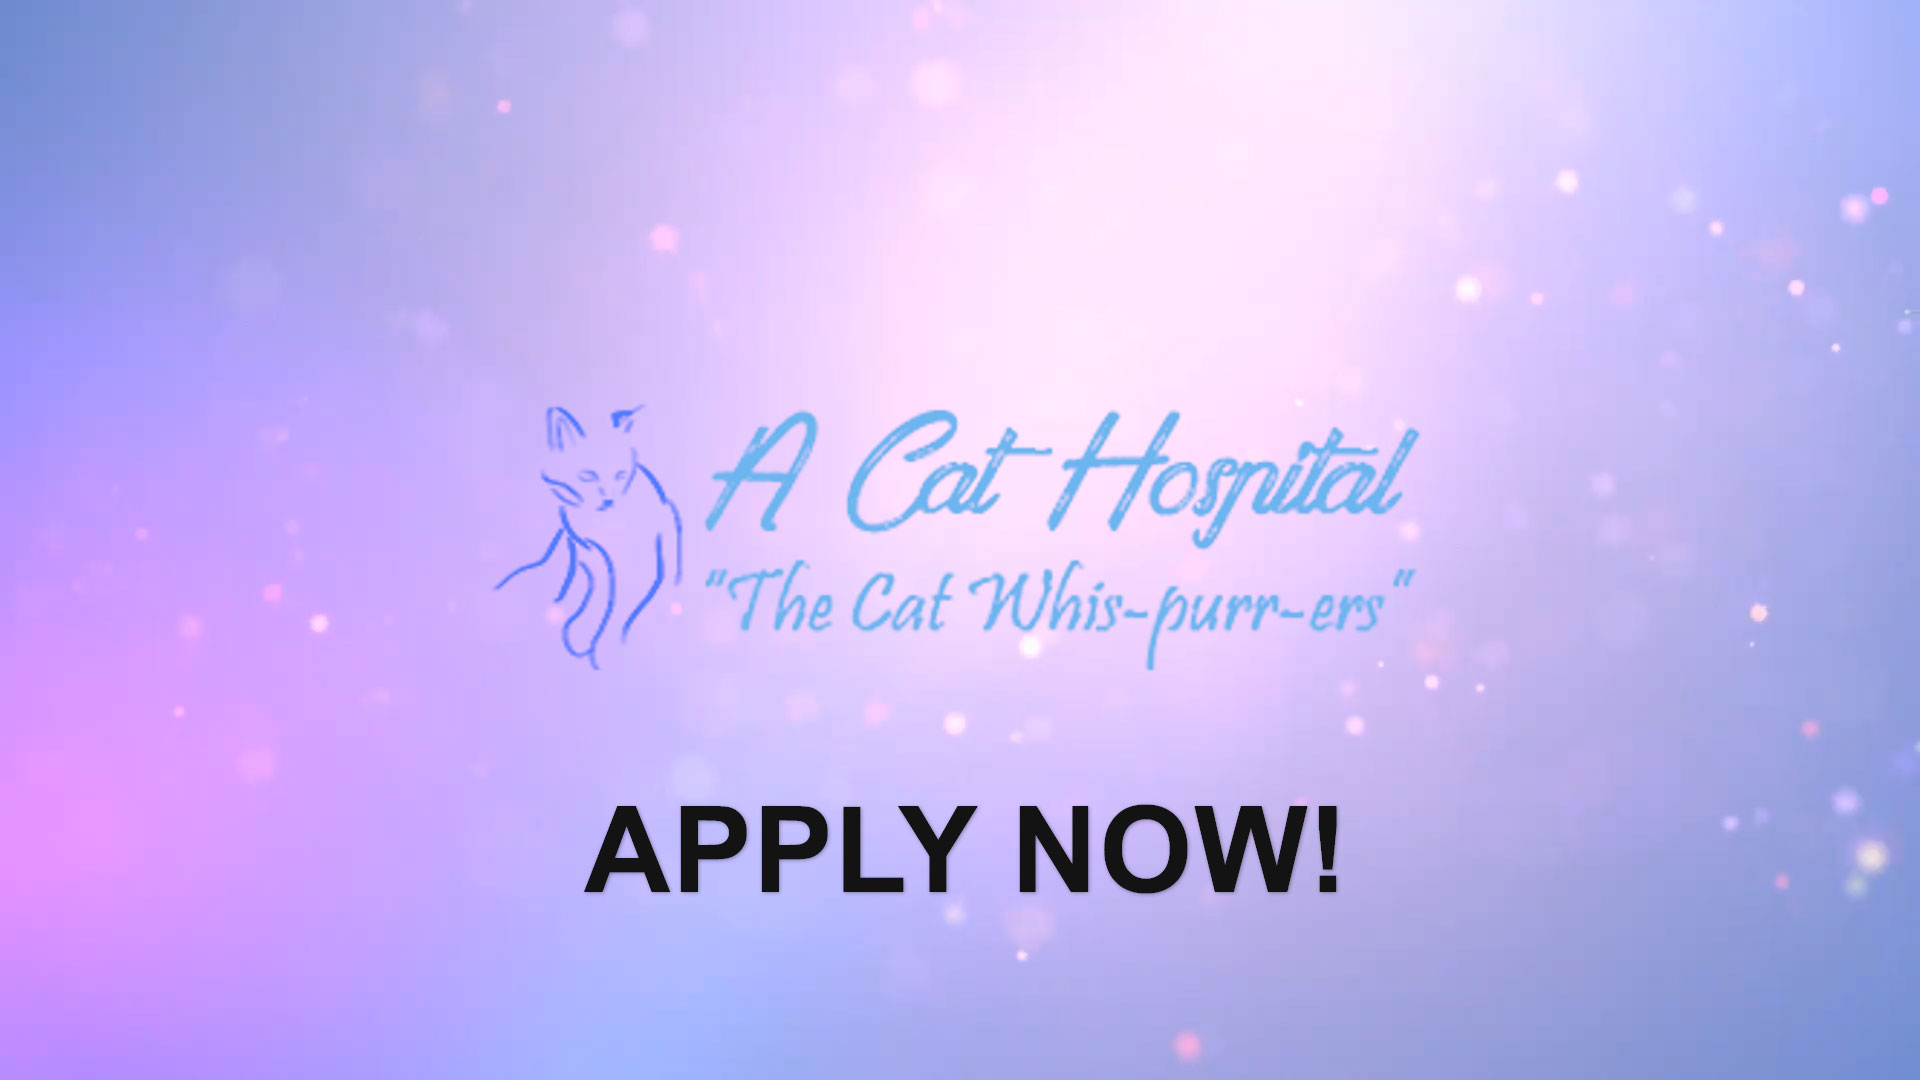 Watch our careers video for available job opening Veterinarian for Feline Hospital in Henderson, Nevada.  USA